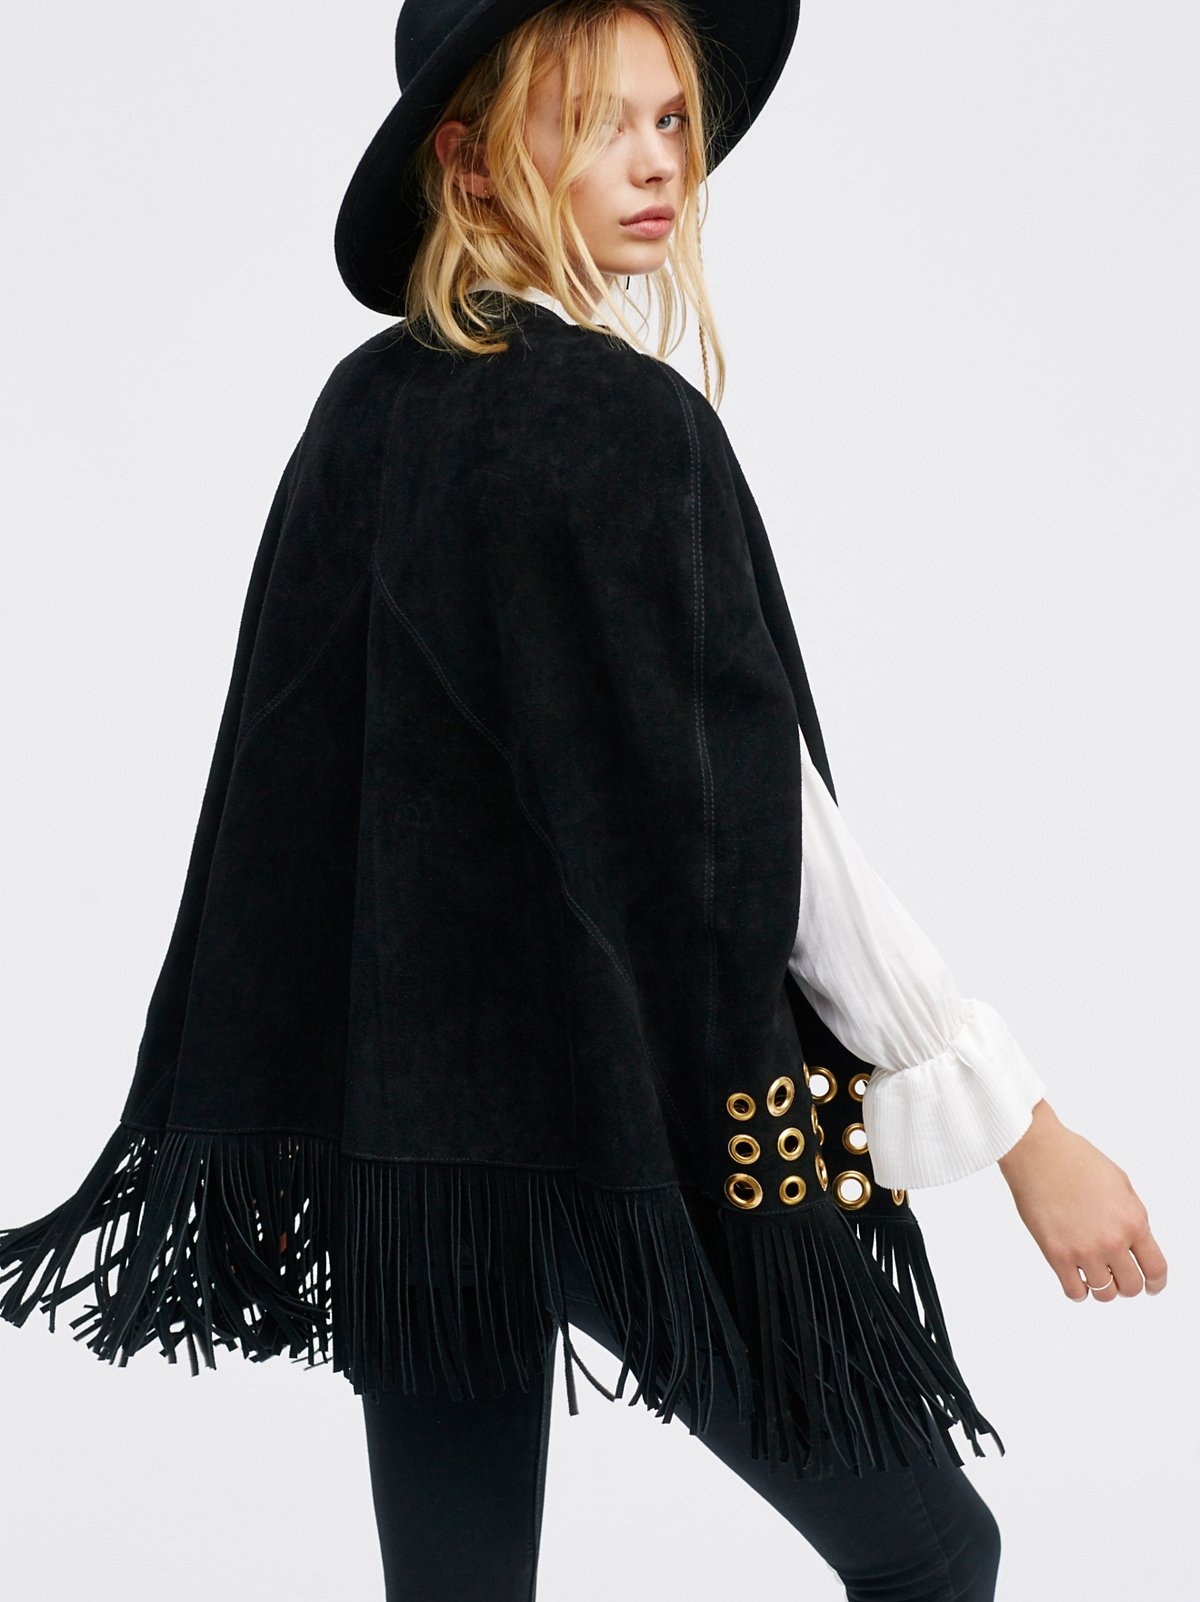 Backstage Suede Cape